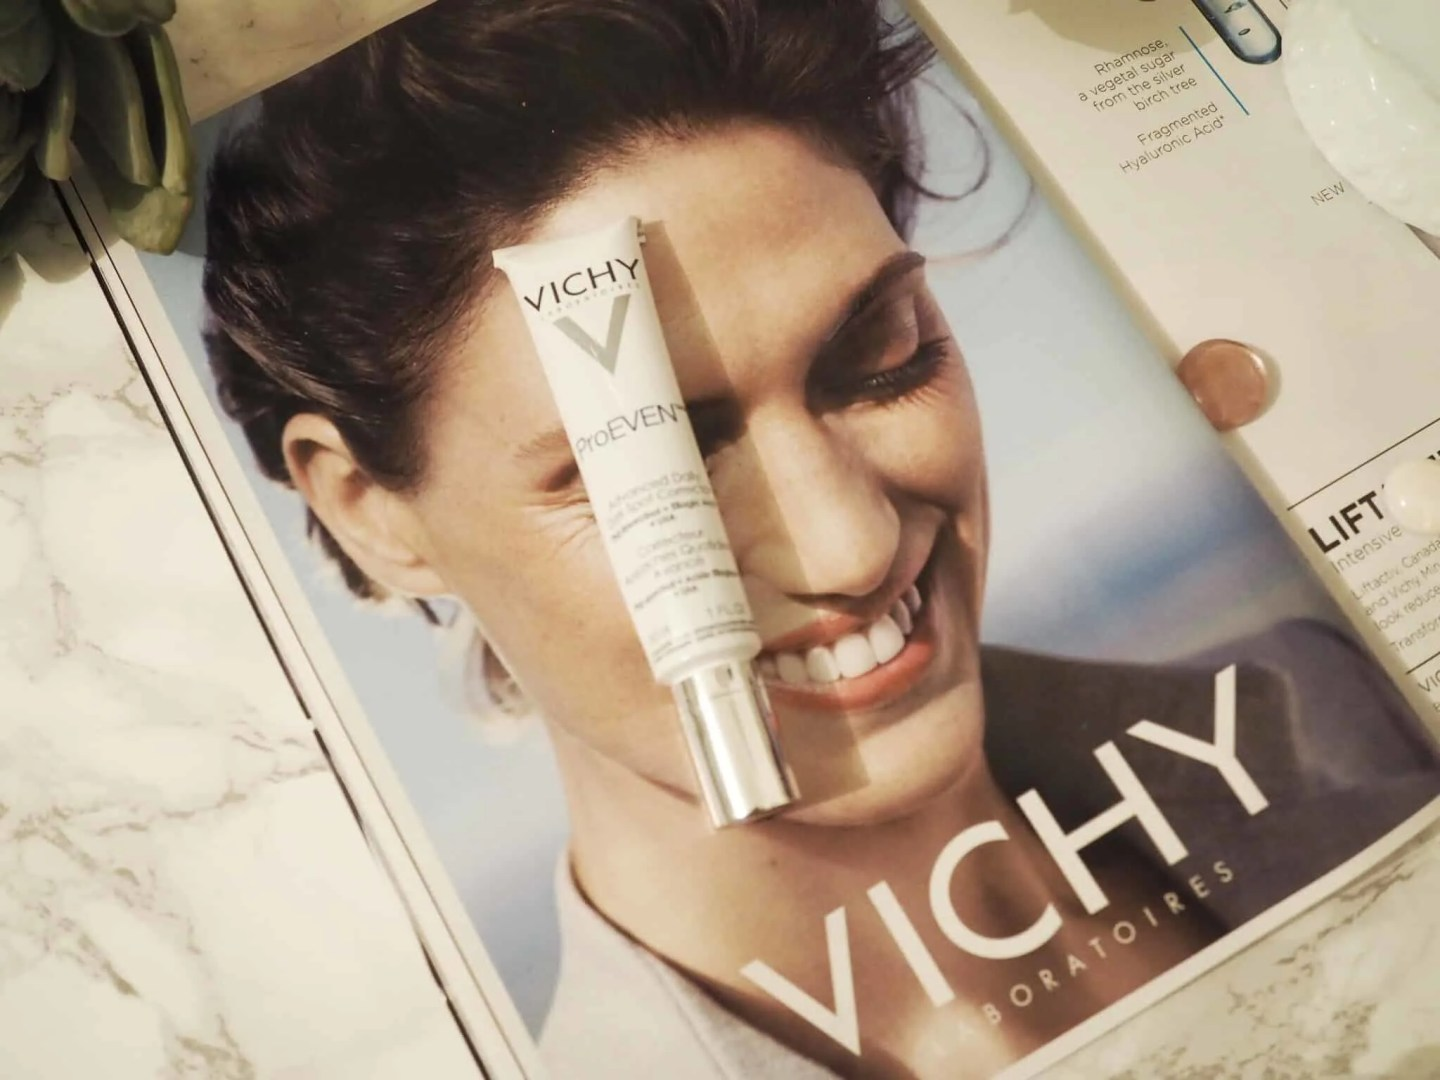 How To Get Rid of Dark Spots With Vichy ProEVEN Advanced Daily Dark Spot Corrector